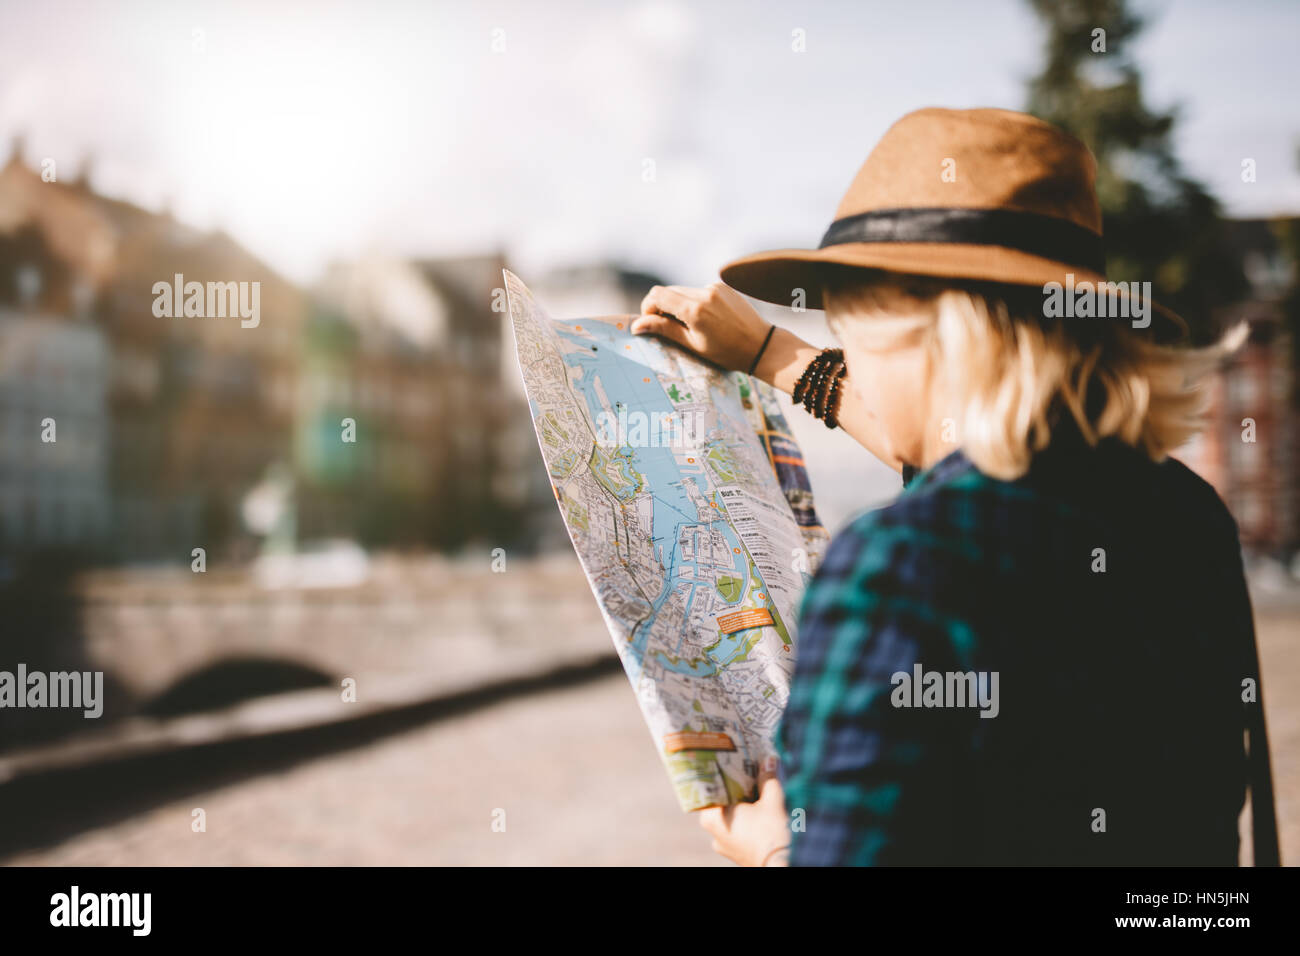 Side view of young woman wearing hat en regardant un plan de la ville. Les touristes à la recherche d'itinéraire Photo Stock